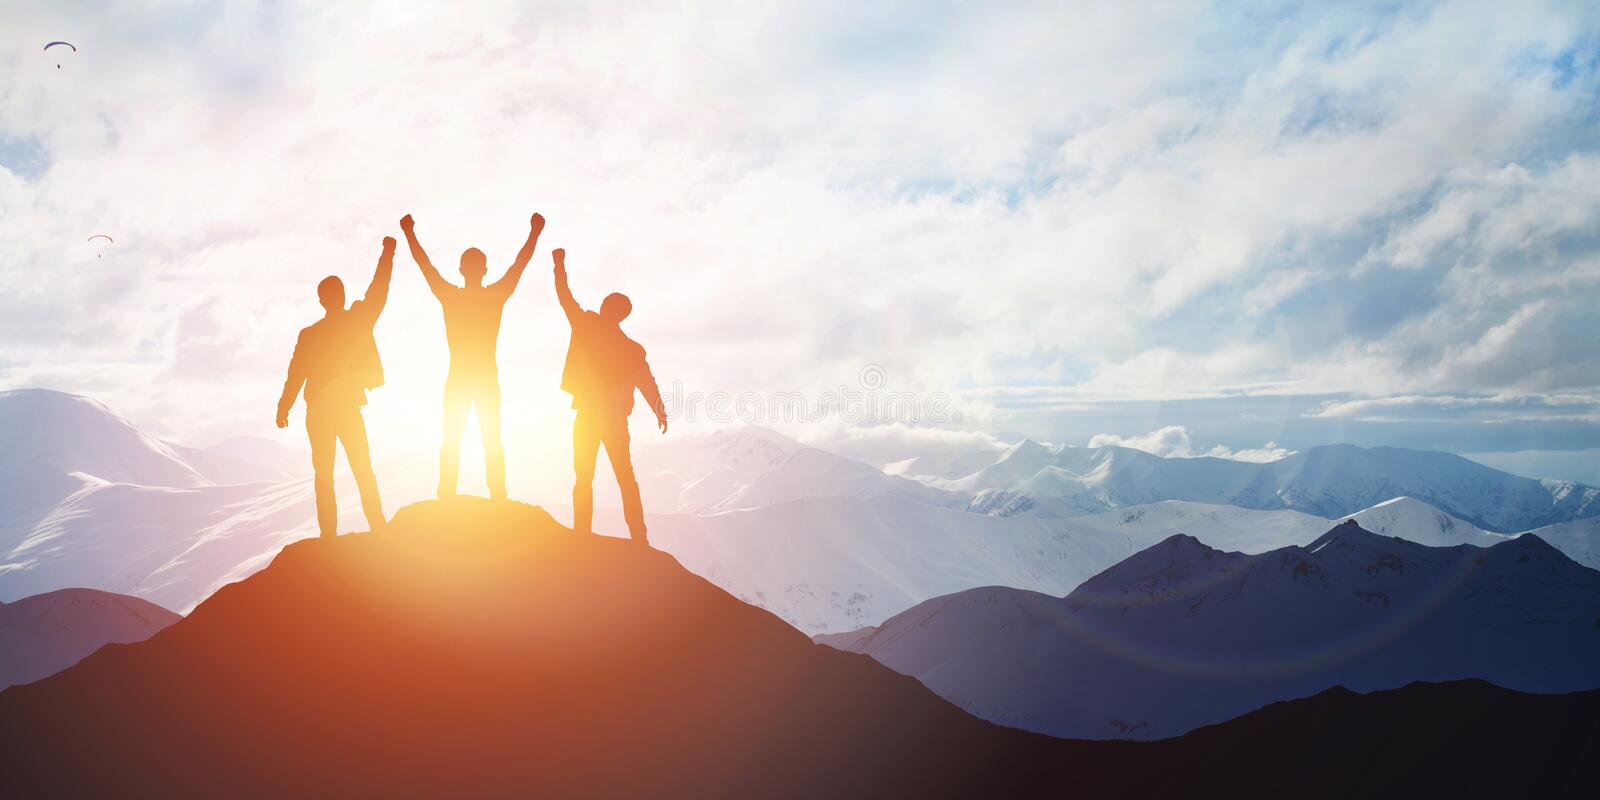 Silhouette of the team on the peak of mountain stock photography